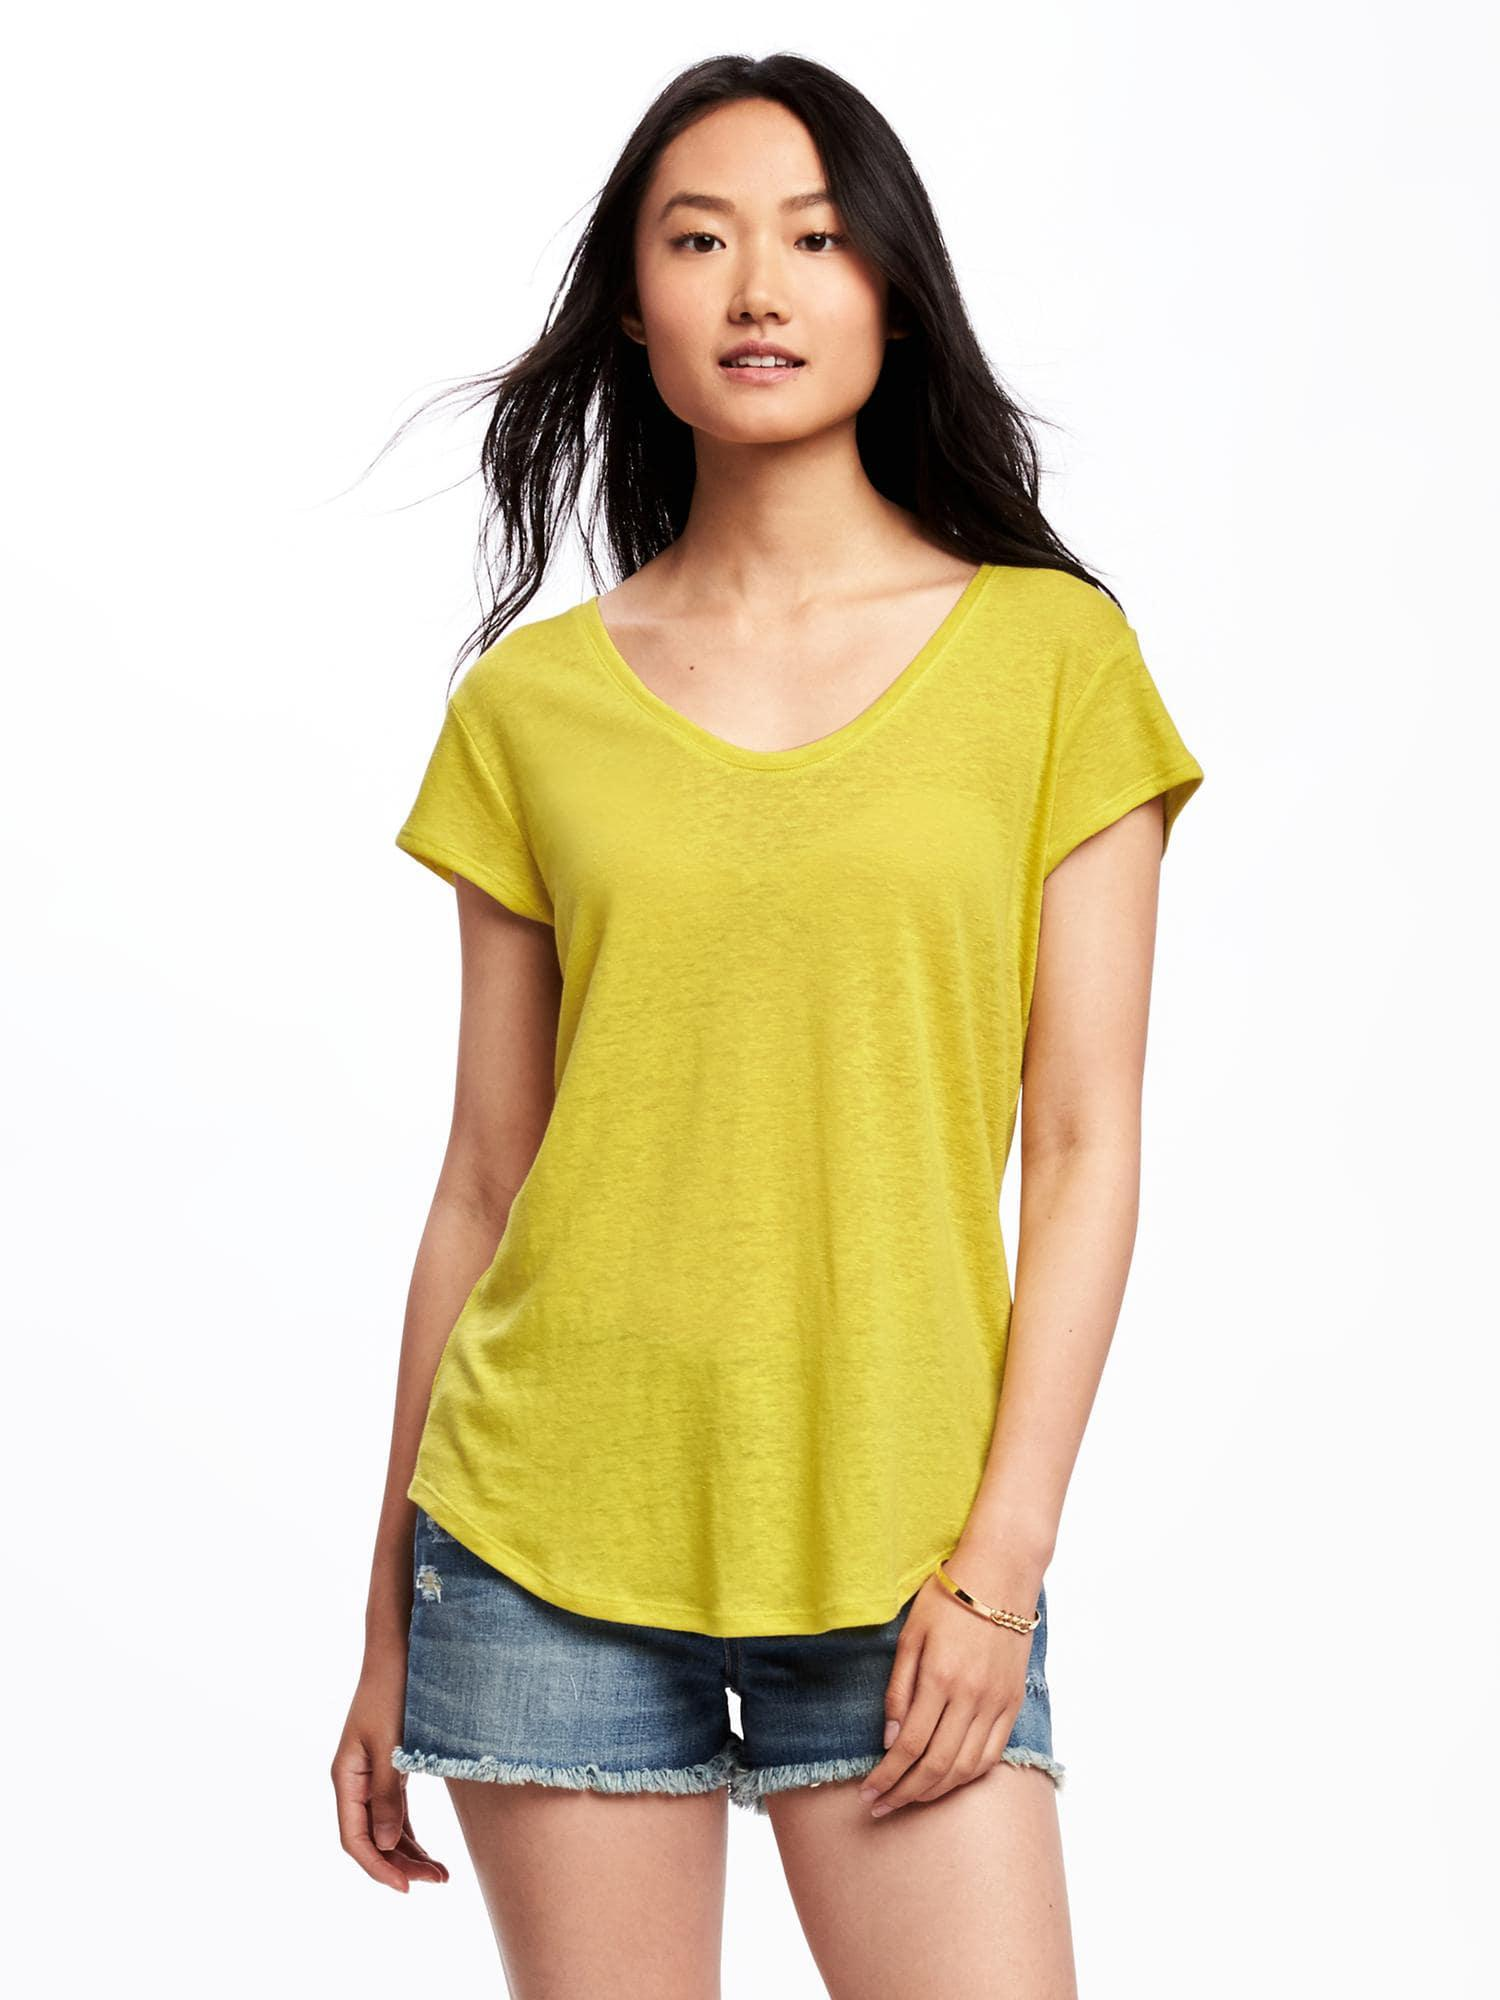 f12c8130f1c99 Lyst - Old Navy Relaxed Linen-blend Curved-hem Tee in Yellow